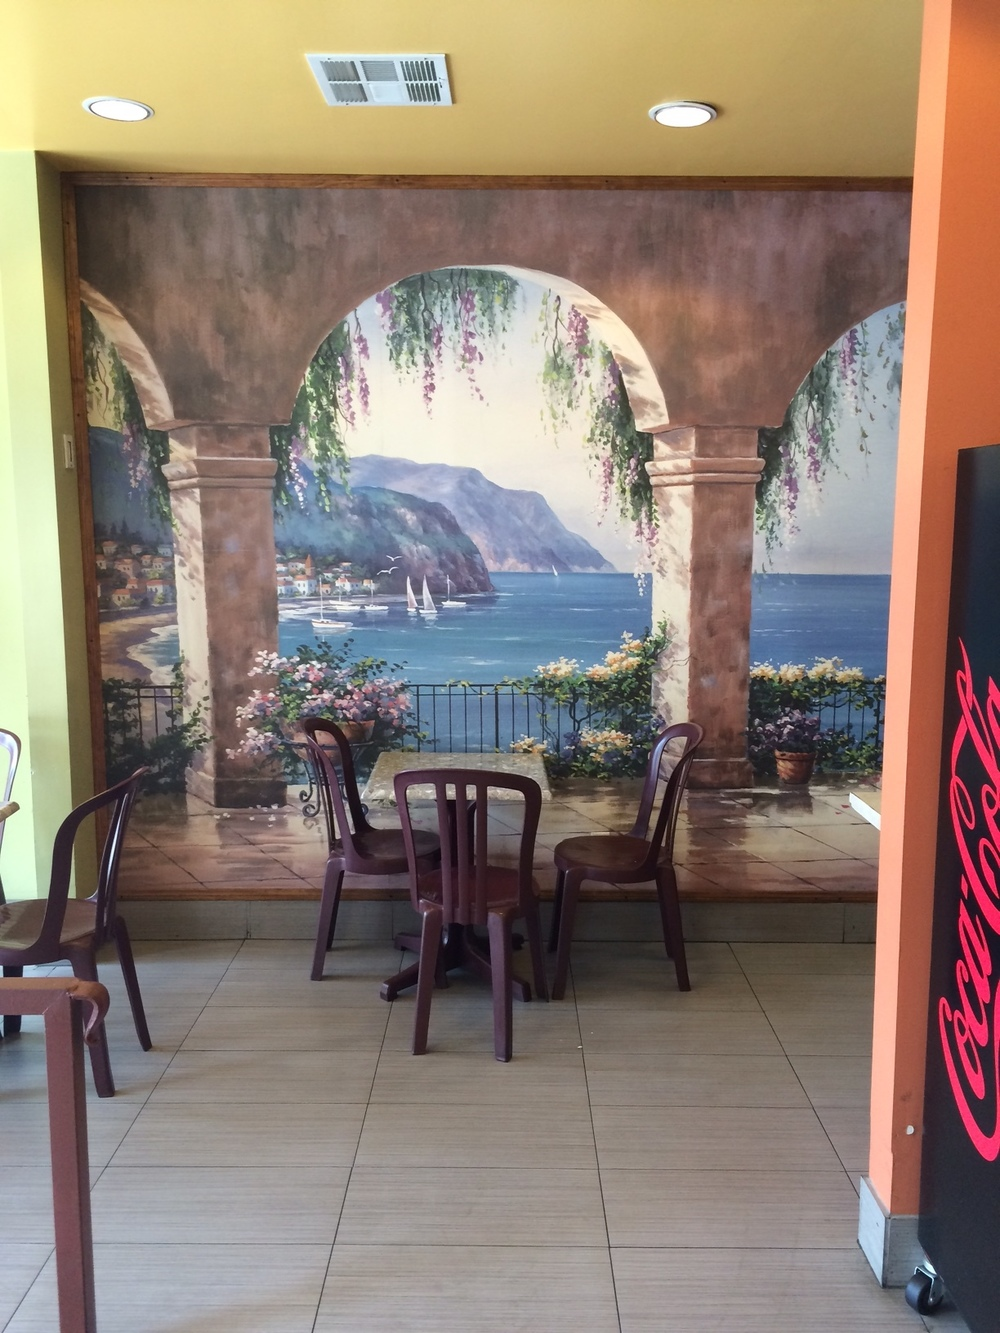 Classically-inspired frescoes line the walls of Med Grill. Photo by Dan Johnson.